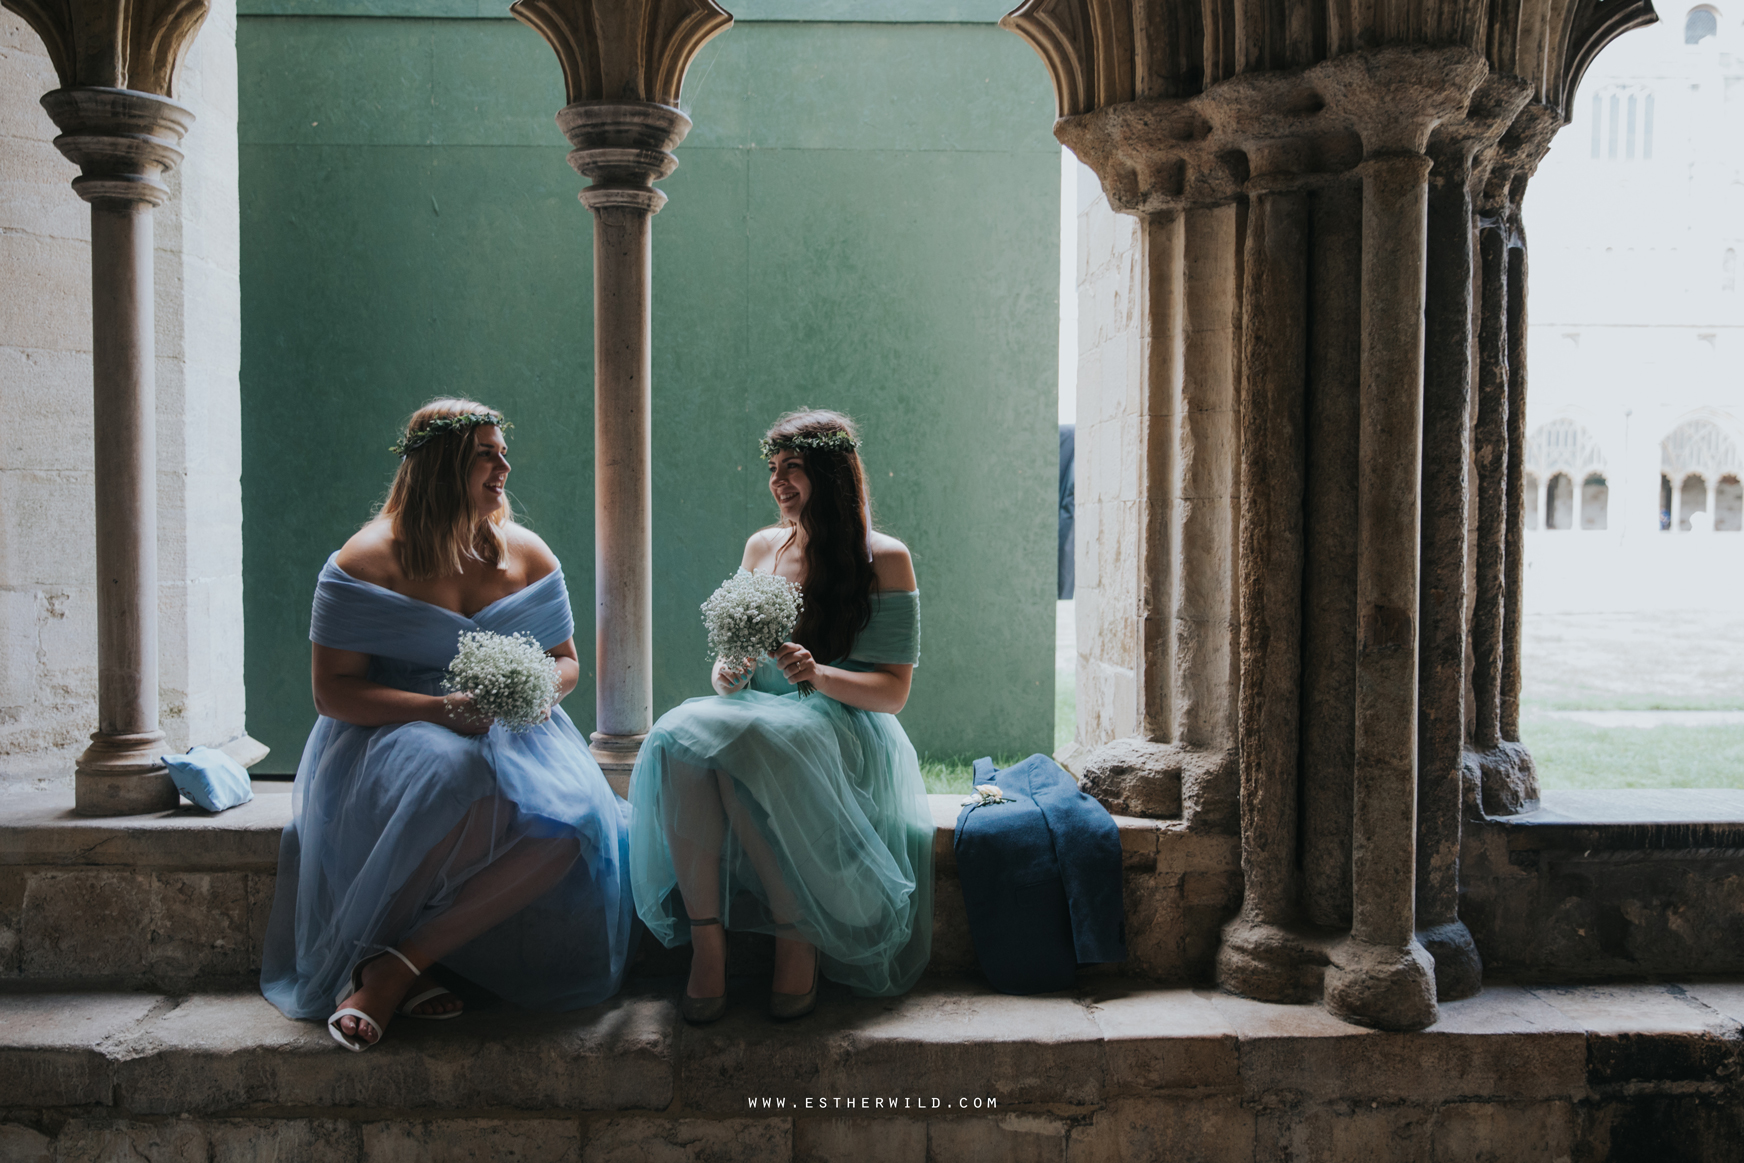 Norwich_Castle_Arcade_Grosvenor_Chip_Birdcage_Cathedral_Cloisters_Refectory_Wedding_Photography_Esther_Wild_Photographer_Norfolk_Kings_Lynn_3R8A1837.jpg